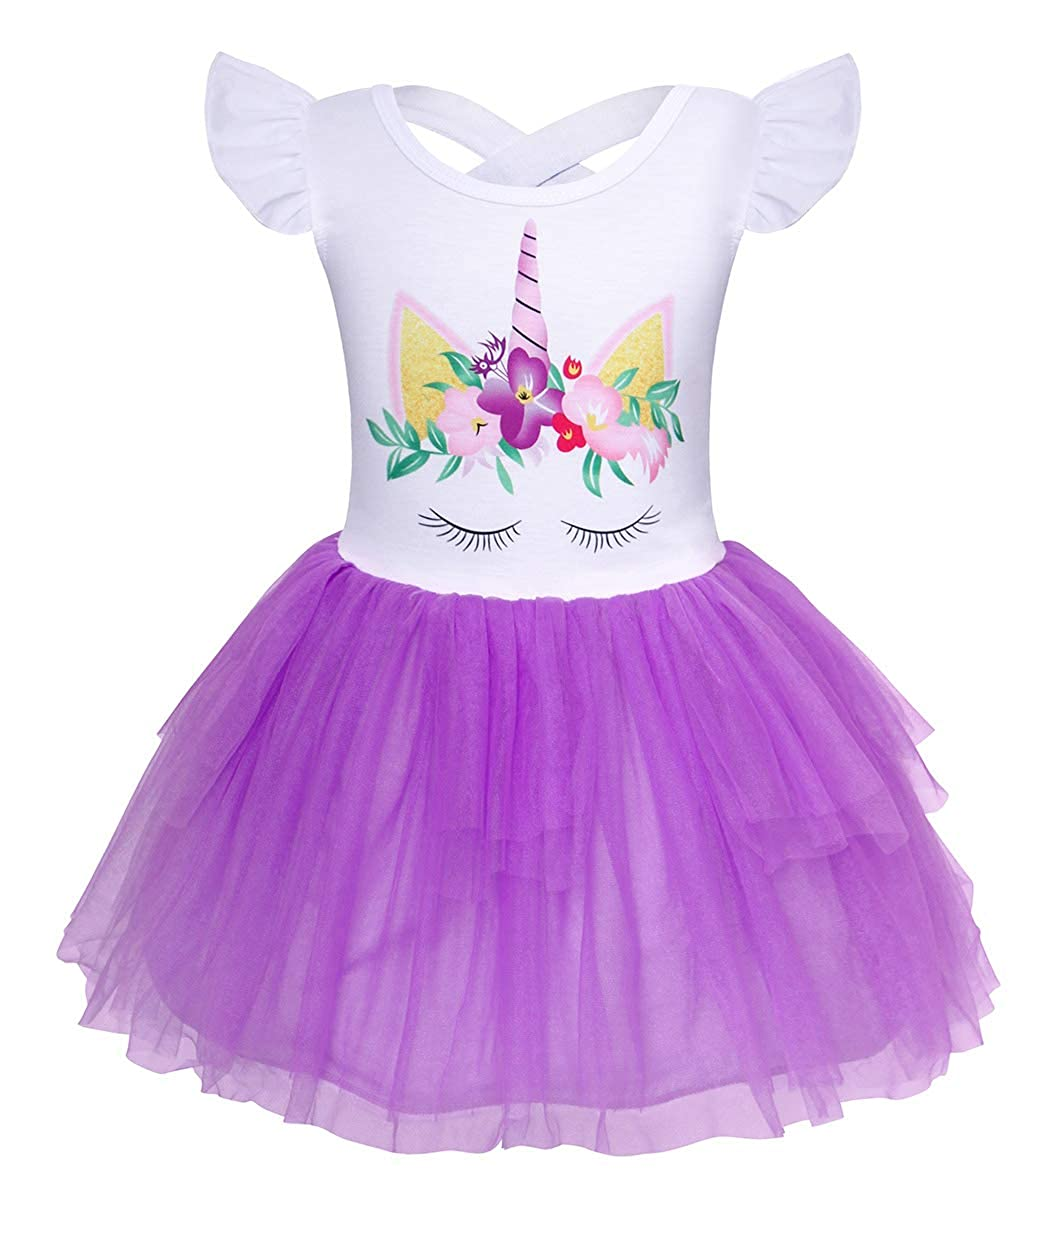 Jurebecia Unicorn Tutu Dress Girls Birthday Party Outfit Pageant Tulle Skirt